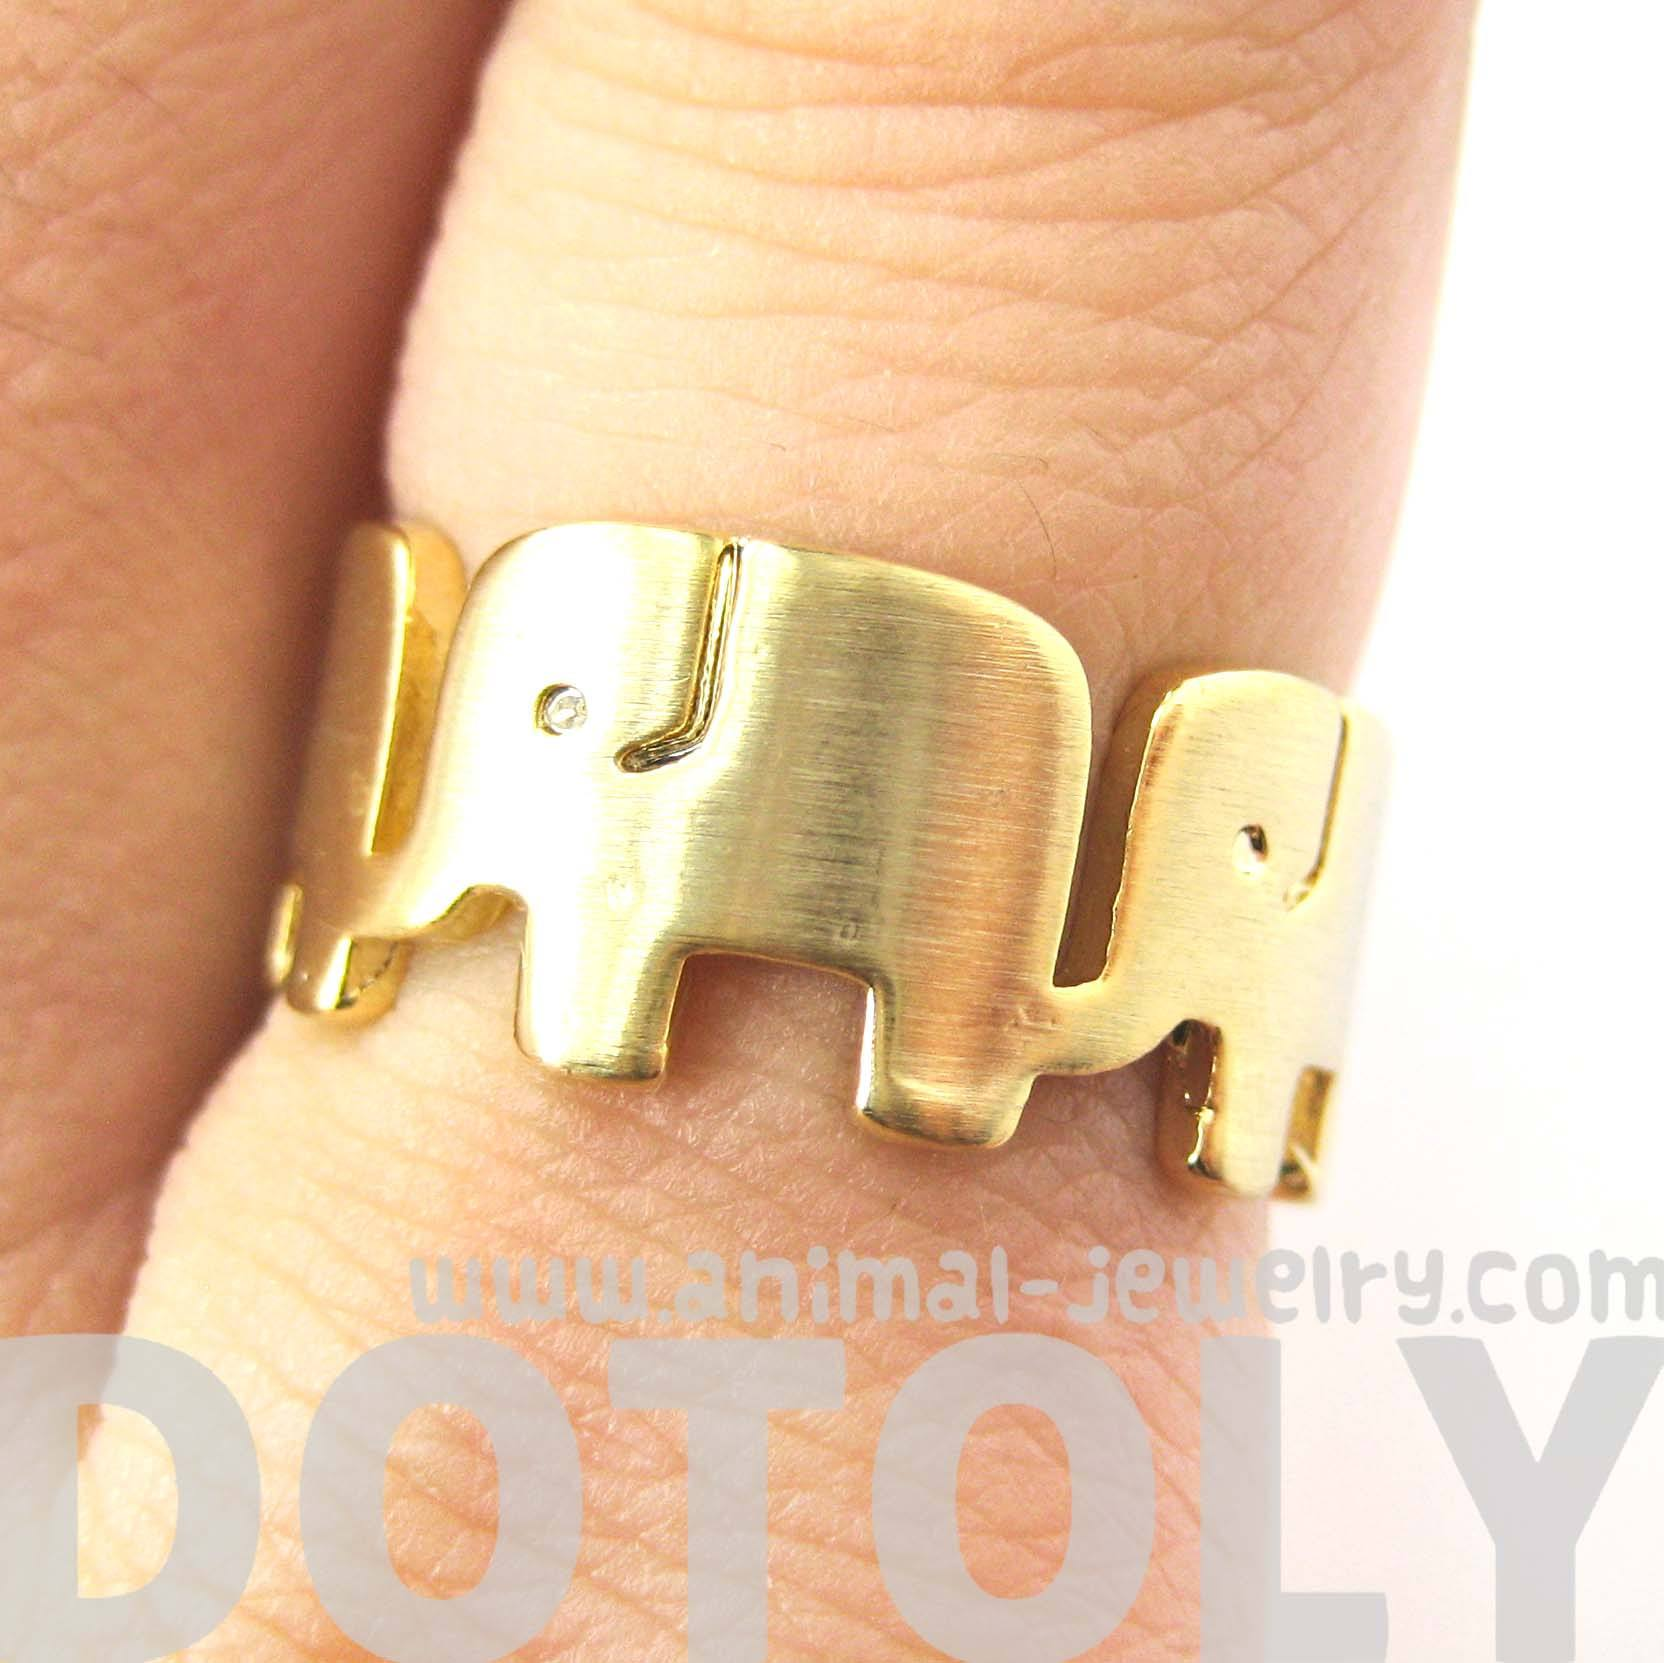 simple-elephant-family-parade-animal-ring-in-gold-us-size-6-to-8-available